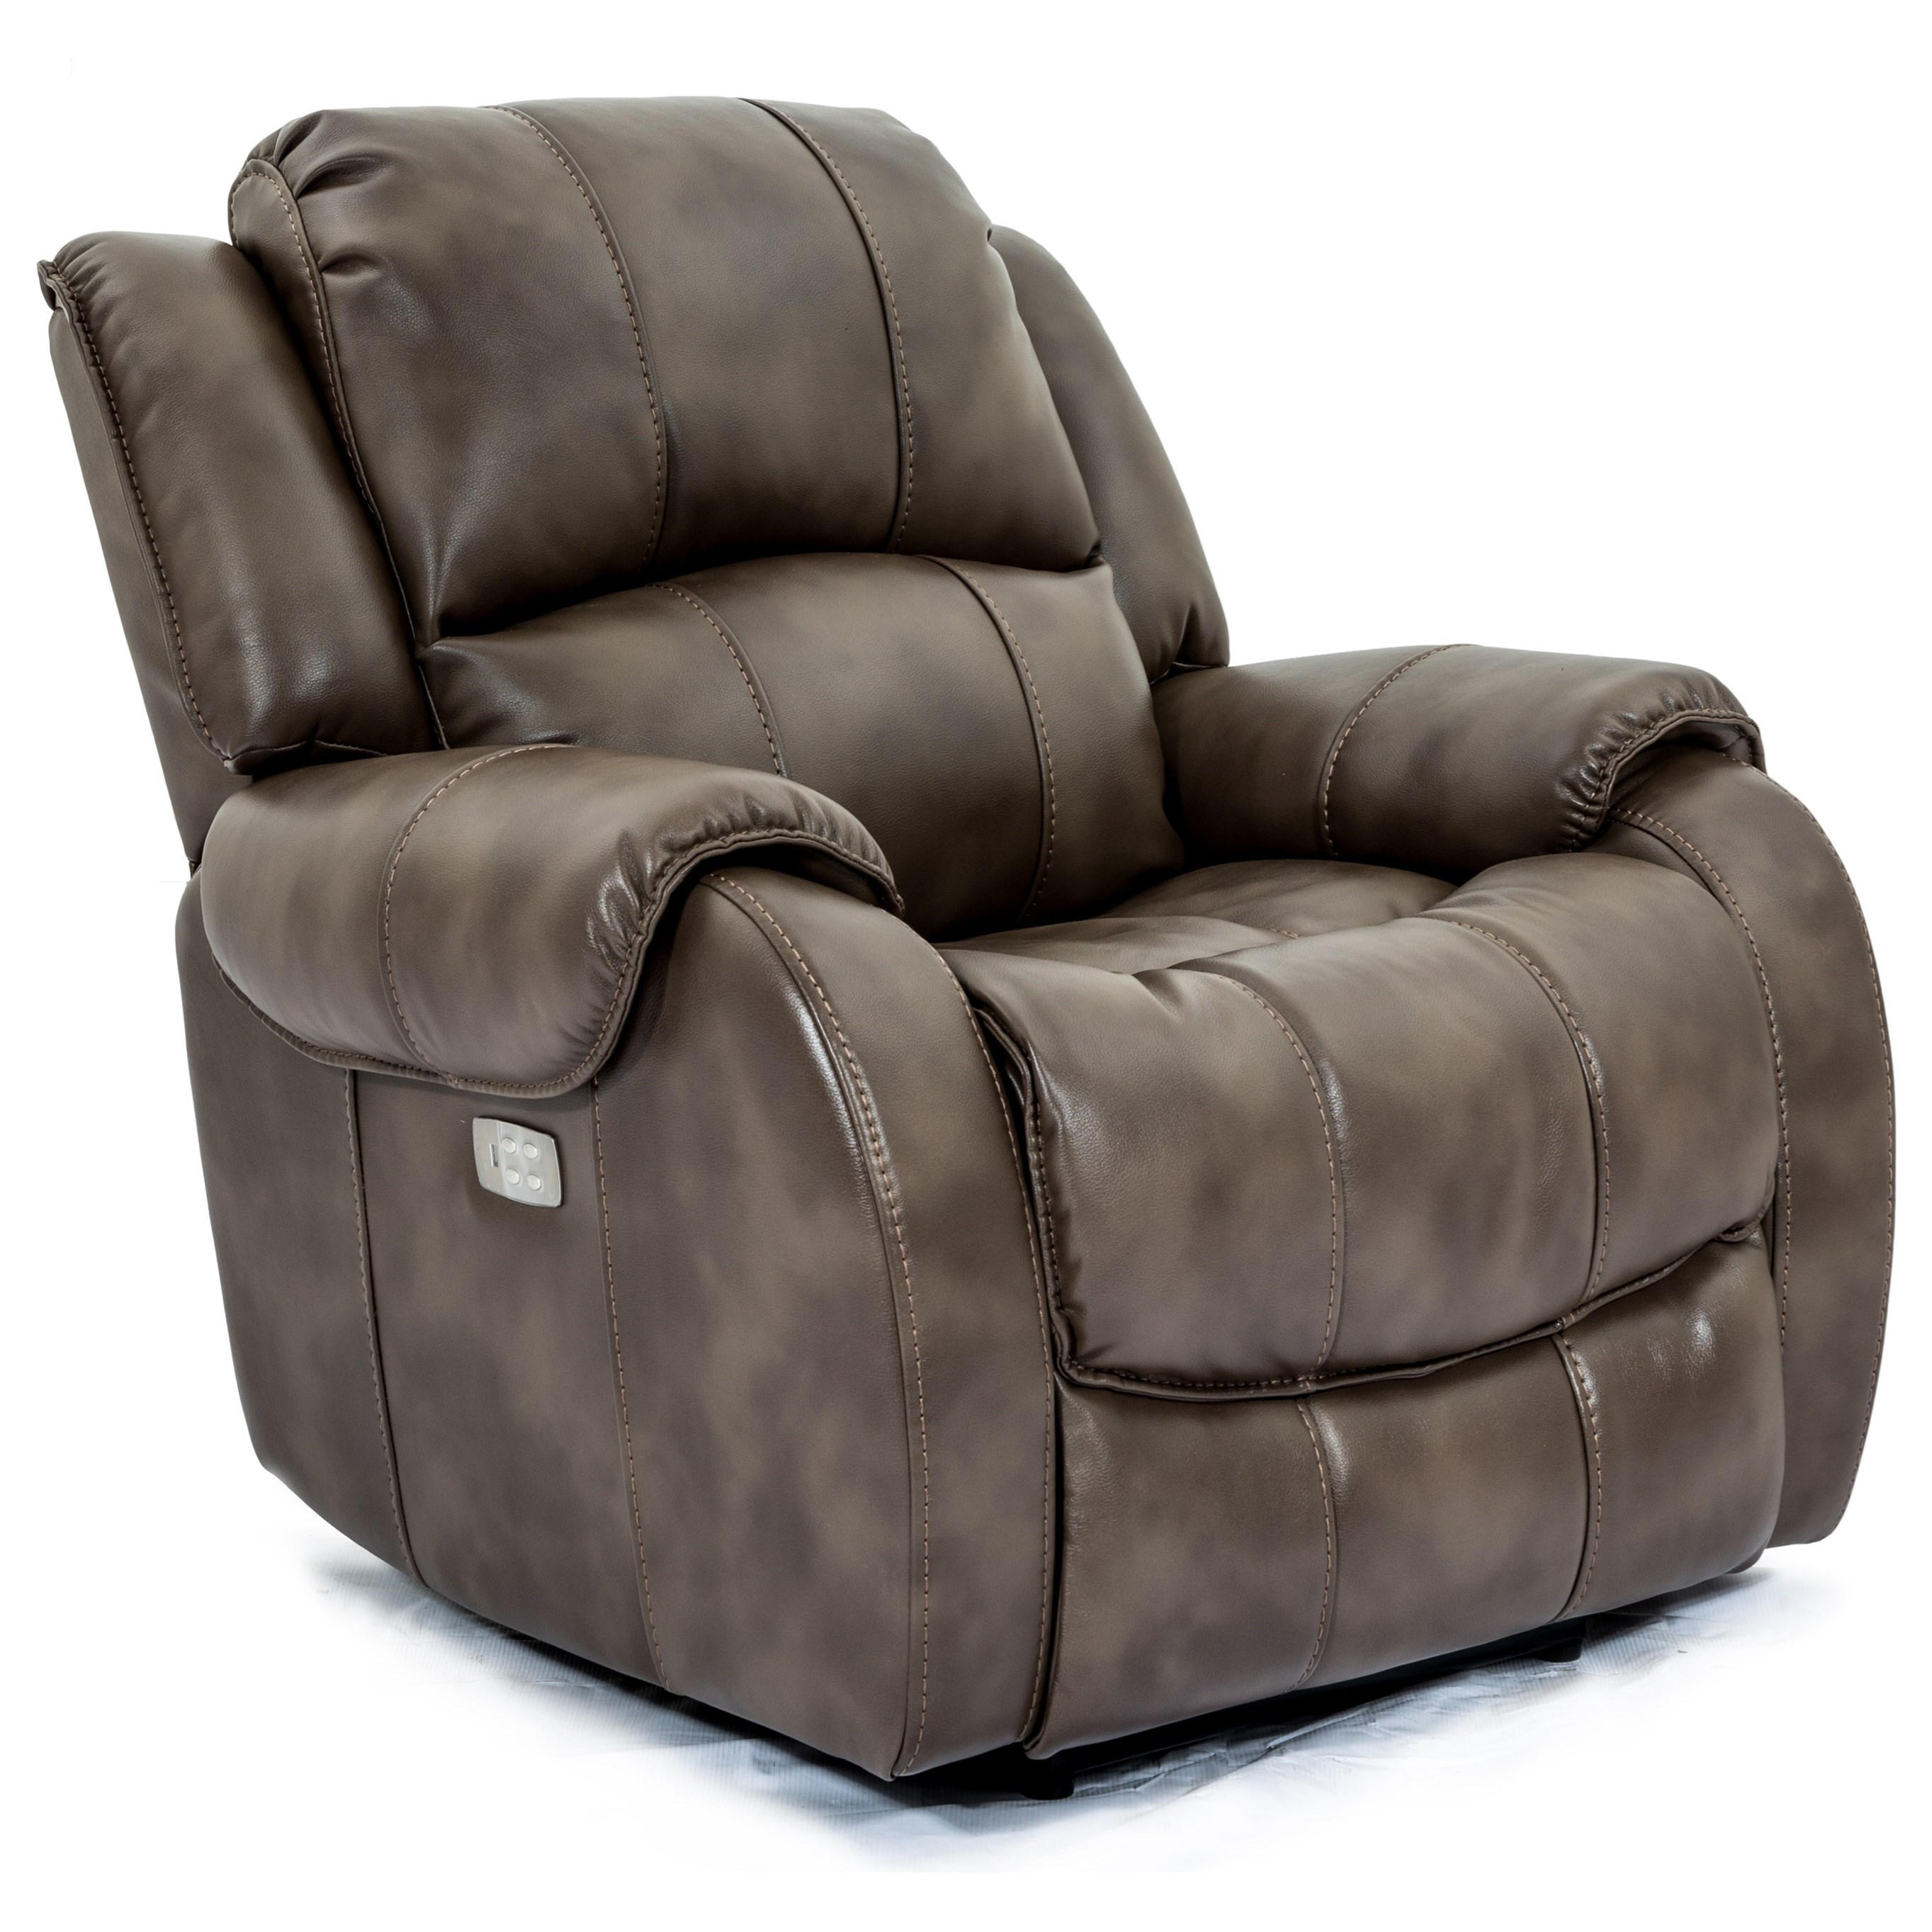 5171 Power Recliner with Power Headrest by Cheers Sofa at Lagniappe Home Store